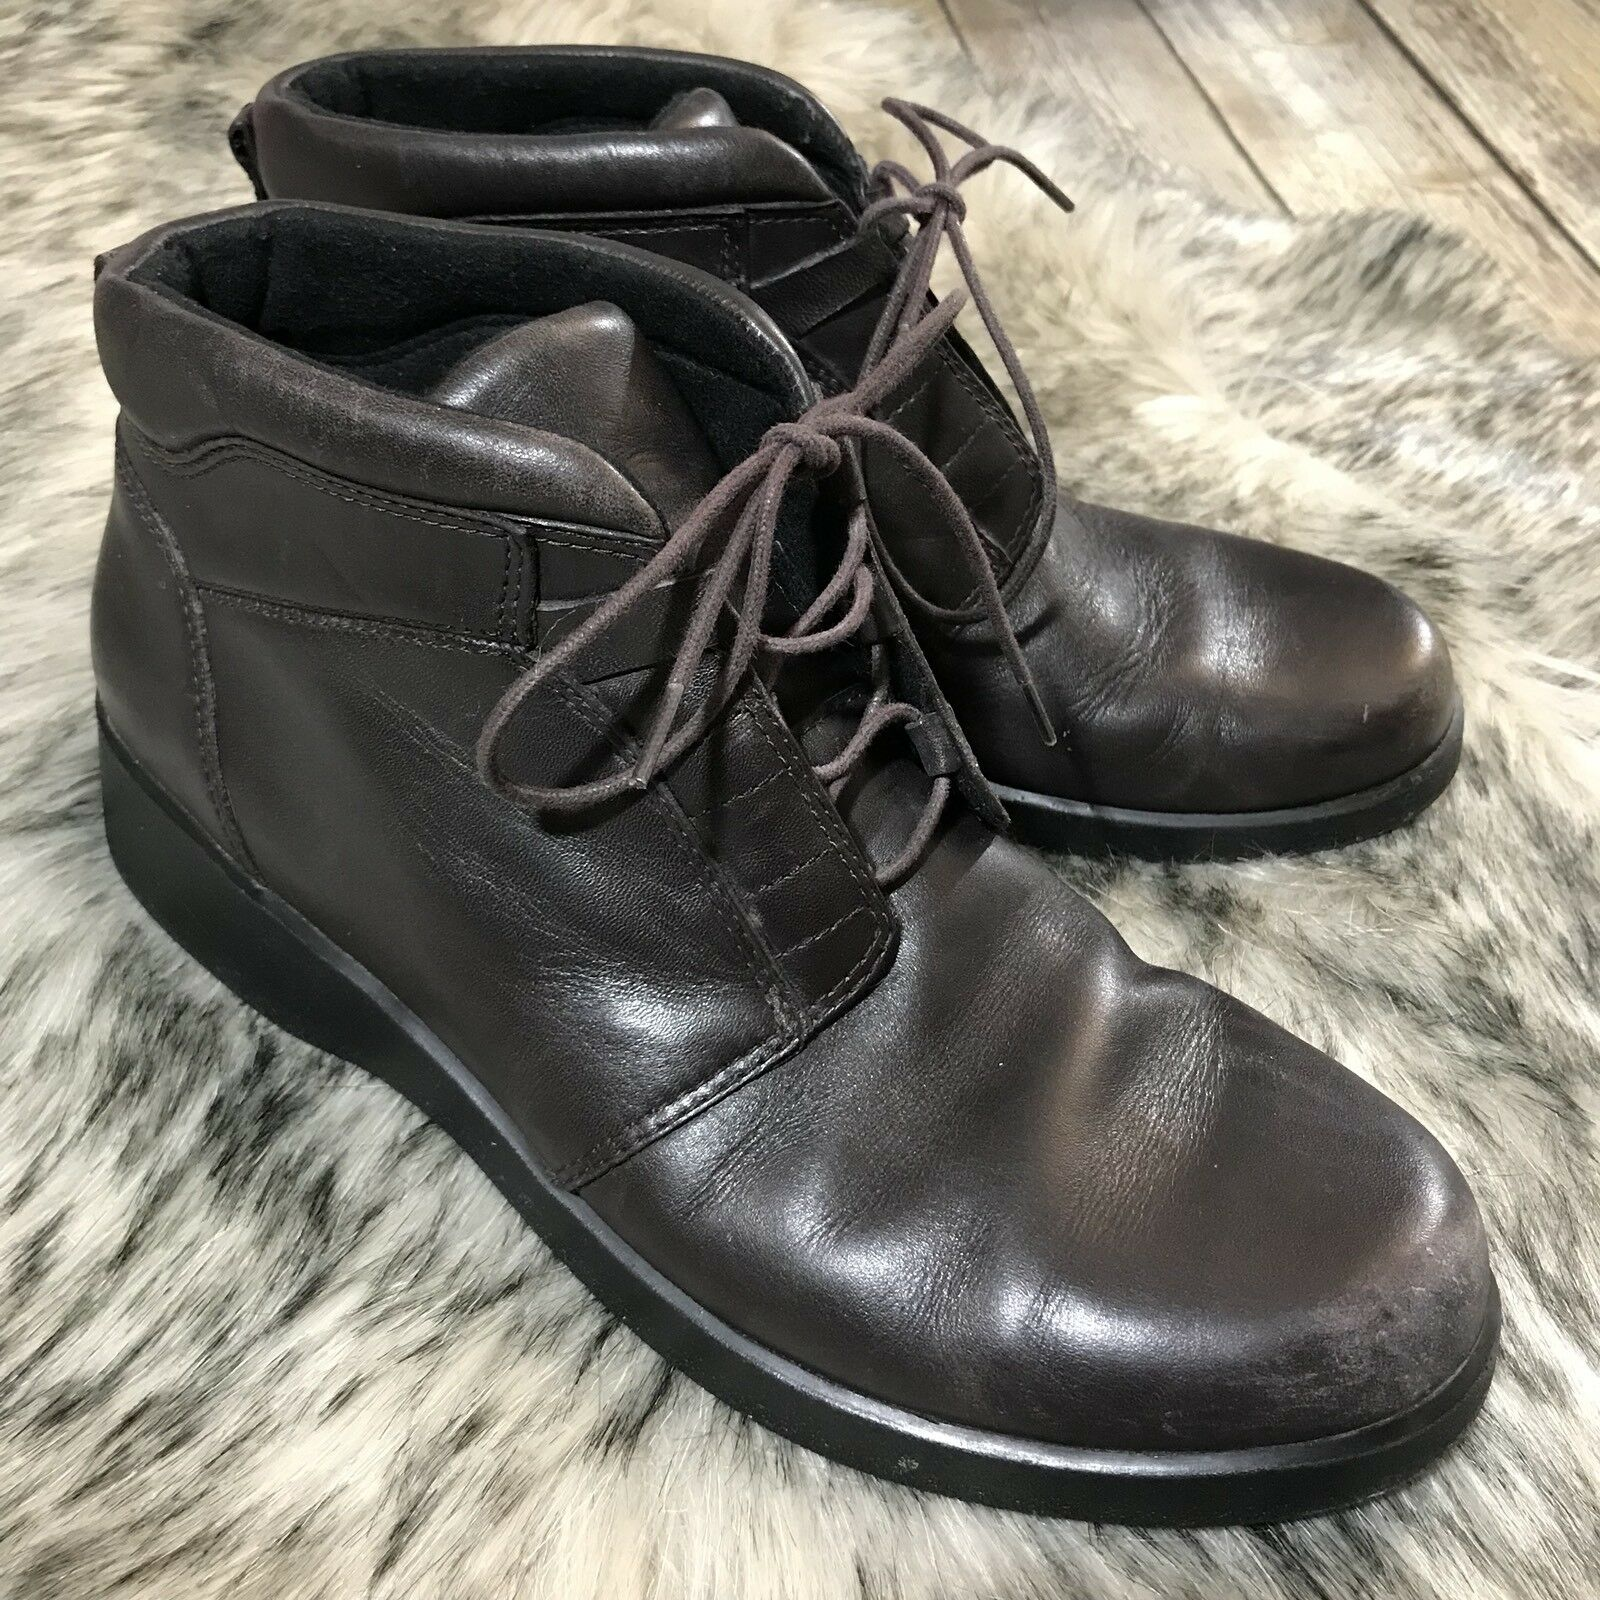 Clarks LEATHER Brown Lace Up Ankle Boots Casual Workwear Womens Size 9.5 M